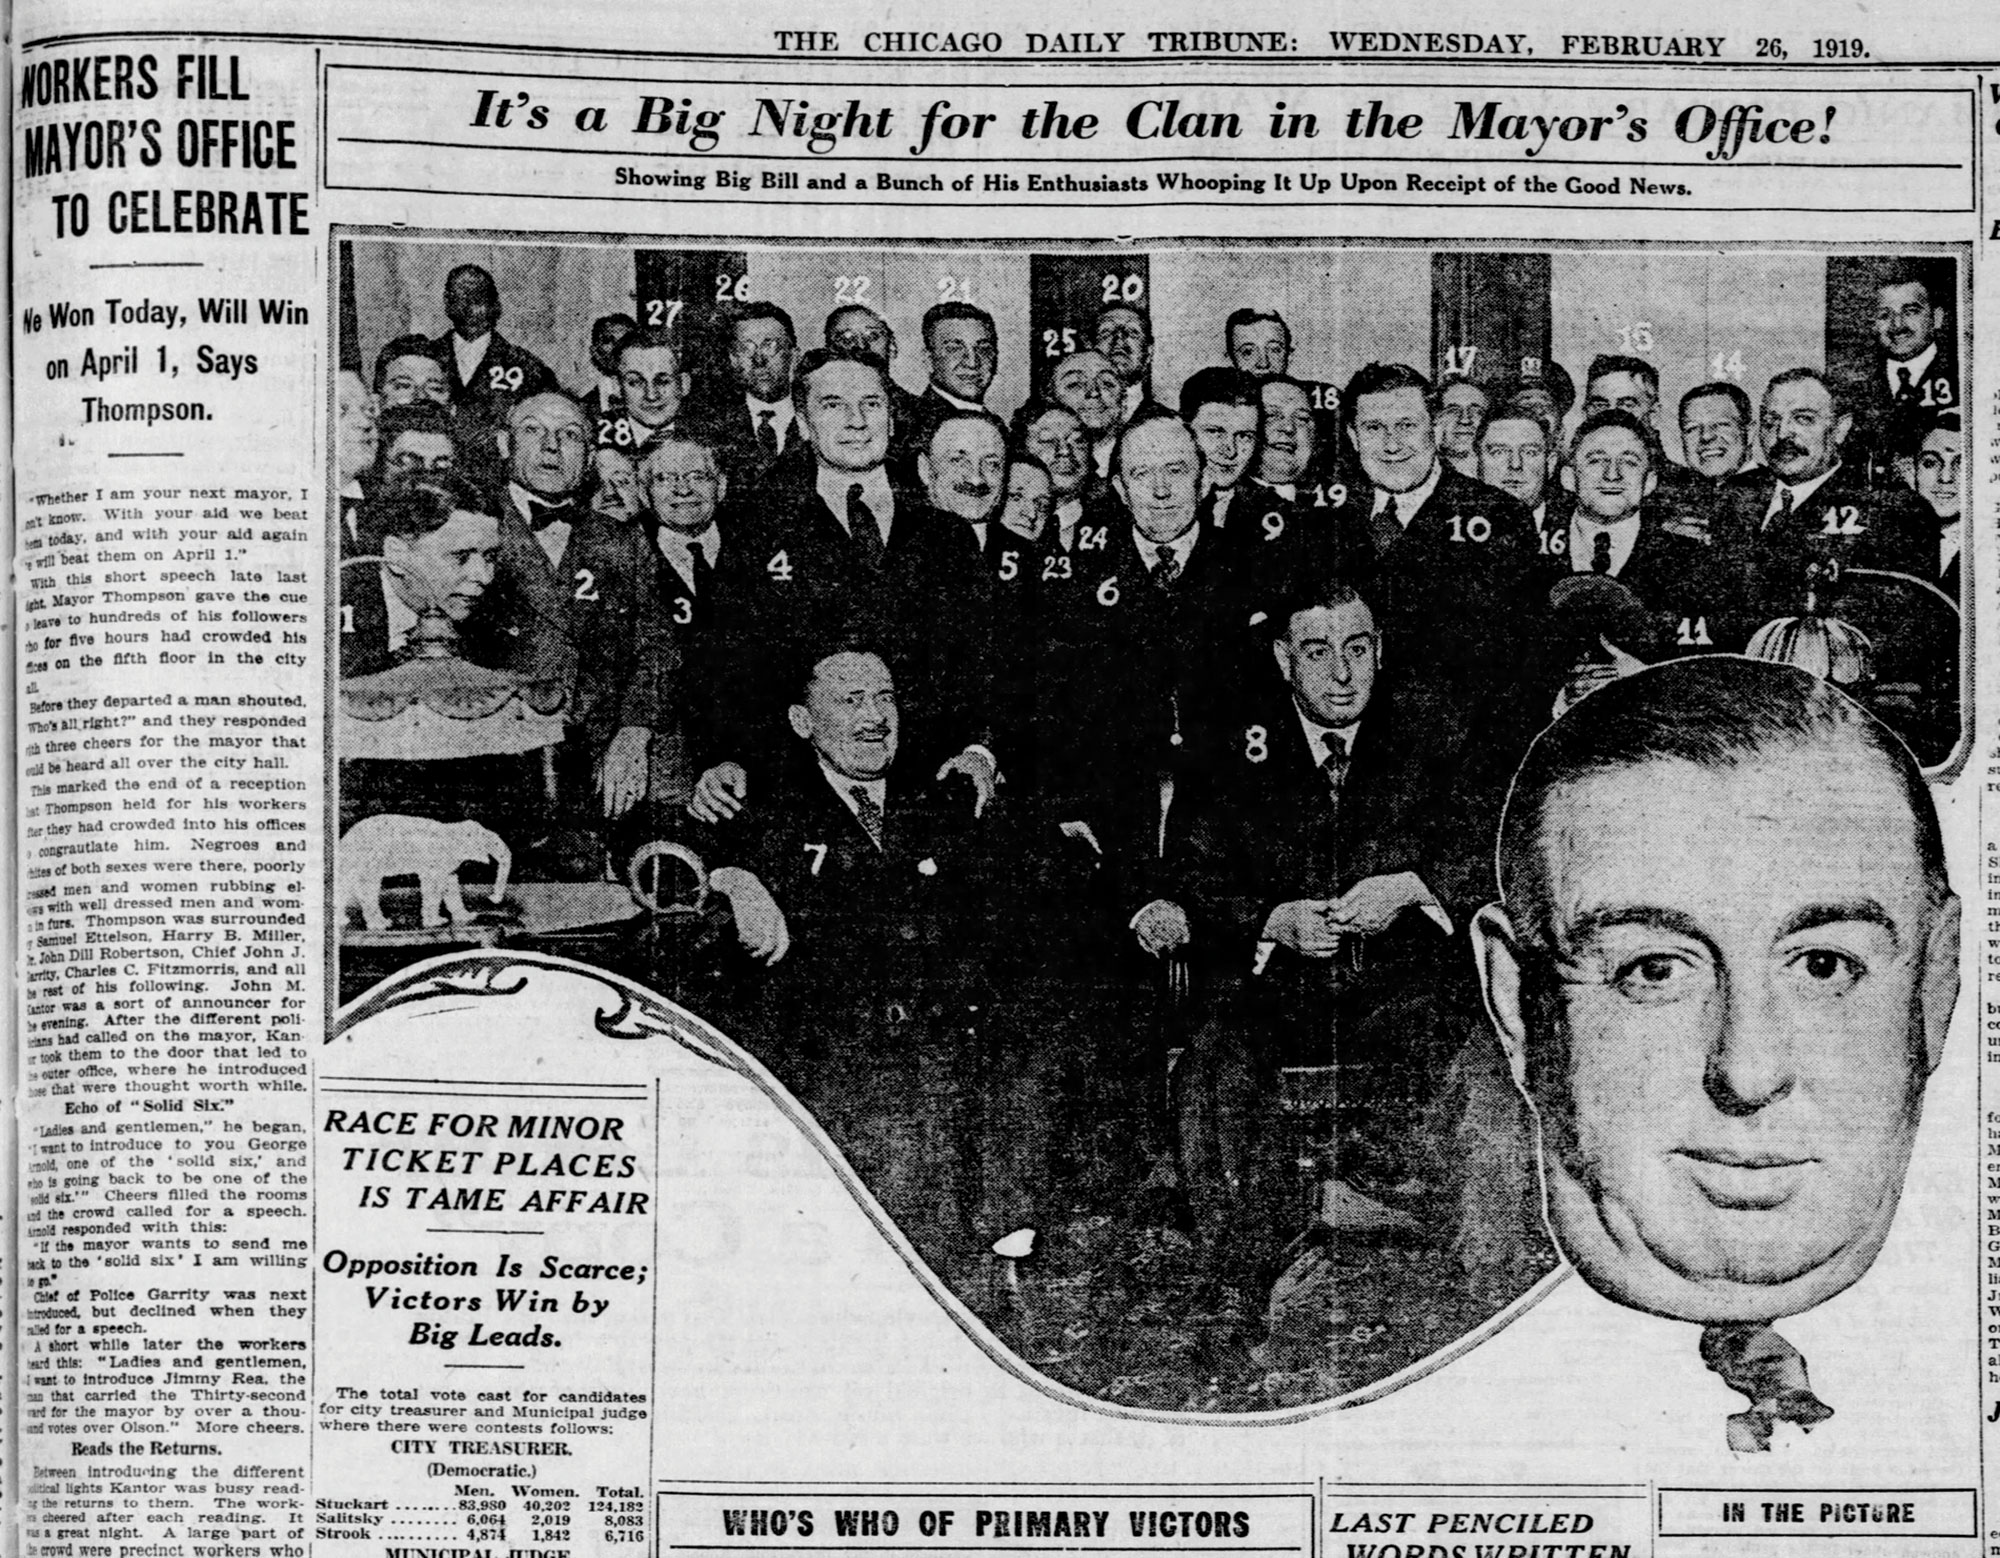 Bidwill (No. 9 in photo) was involved in the reelection campaign of Chicago mayor William Thompson in 1919; Photo courtesy Chicago Tribune